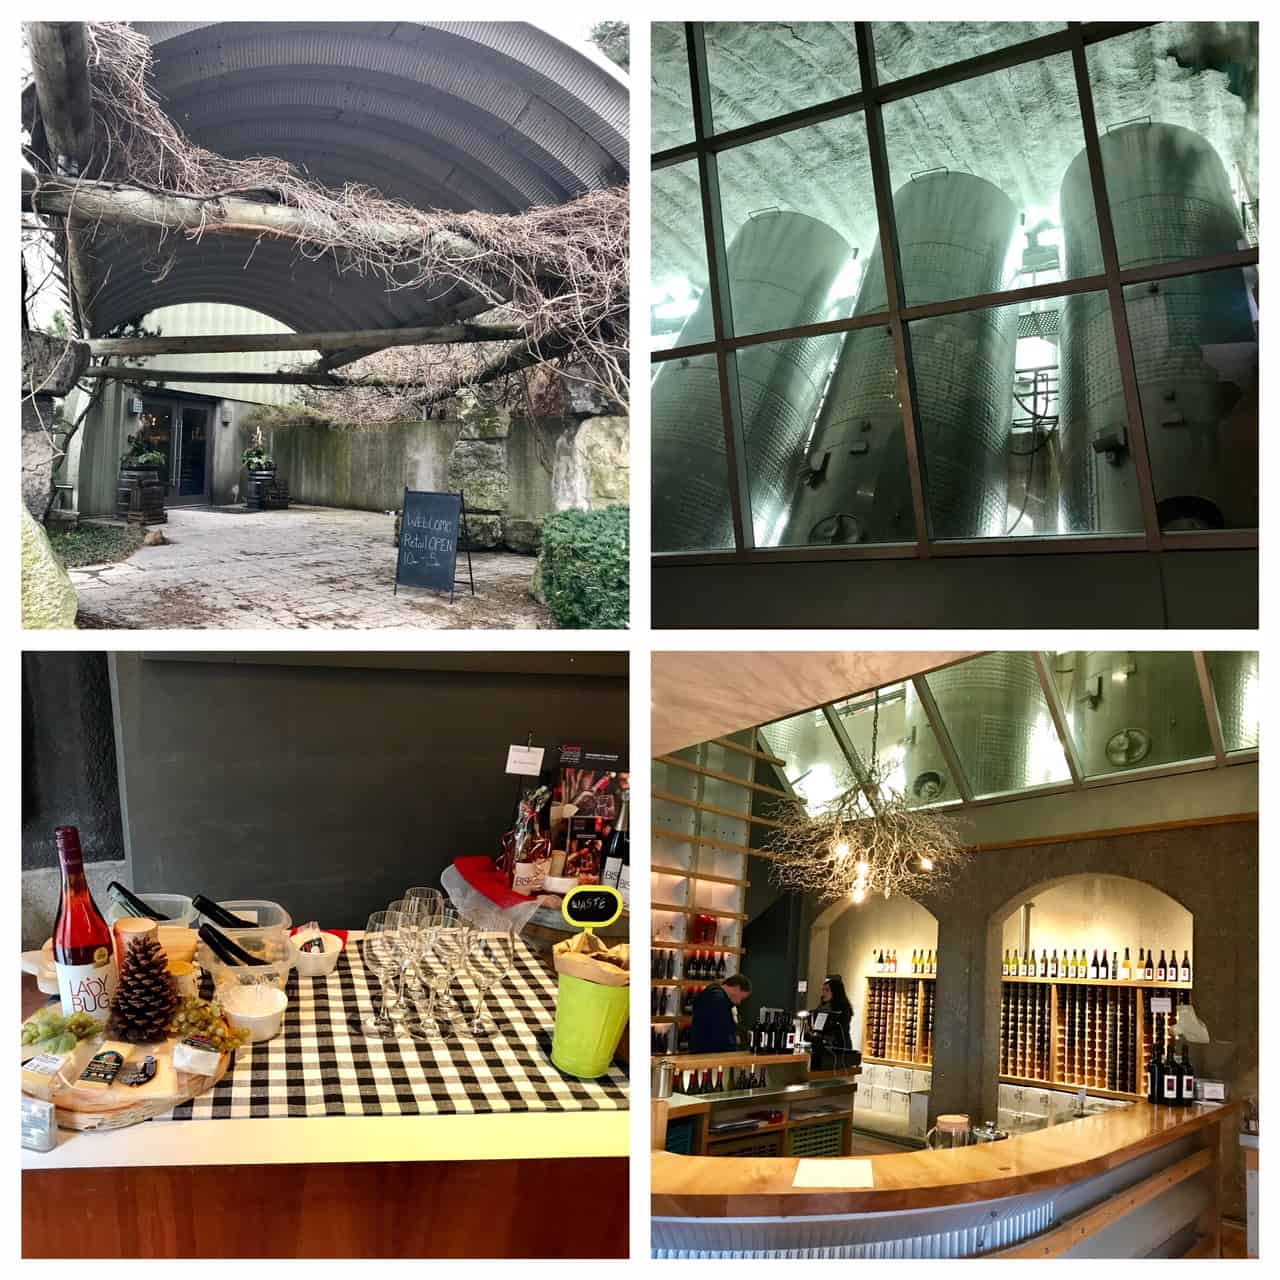 Collage of images from Malivoire Winery